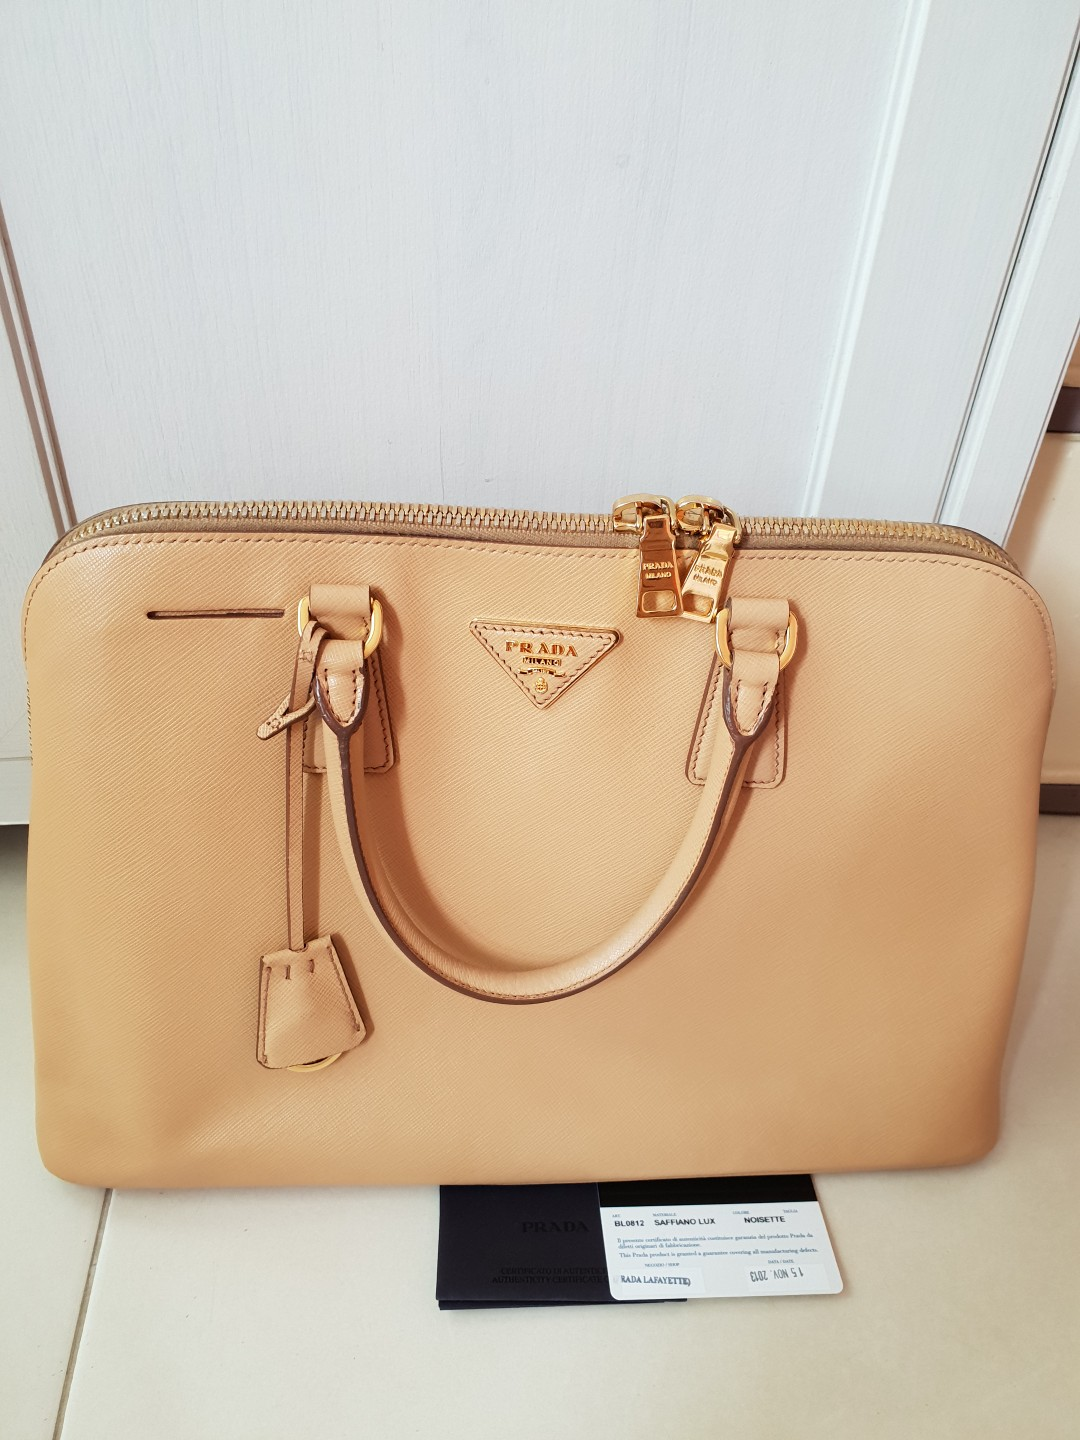 a61800ab327c Prada Saffiano Lux Bag Authentic (Winter Edition), Luxury, Bags & Wallets,  Handbags on Carousell